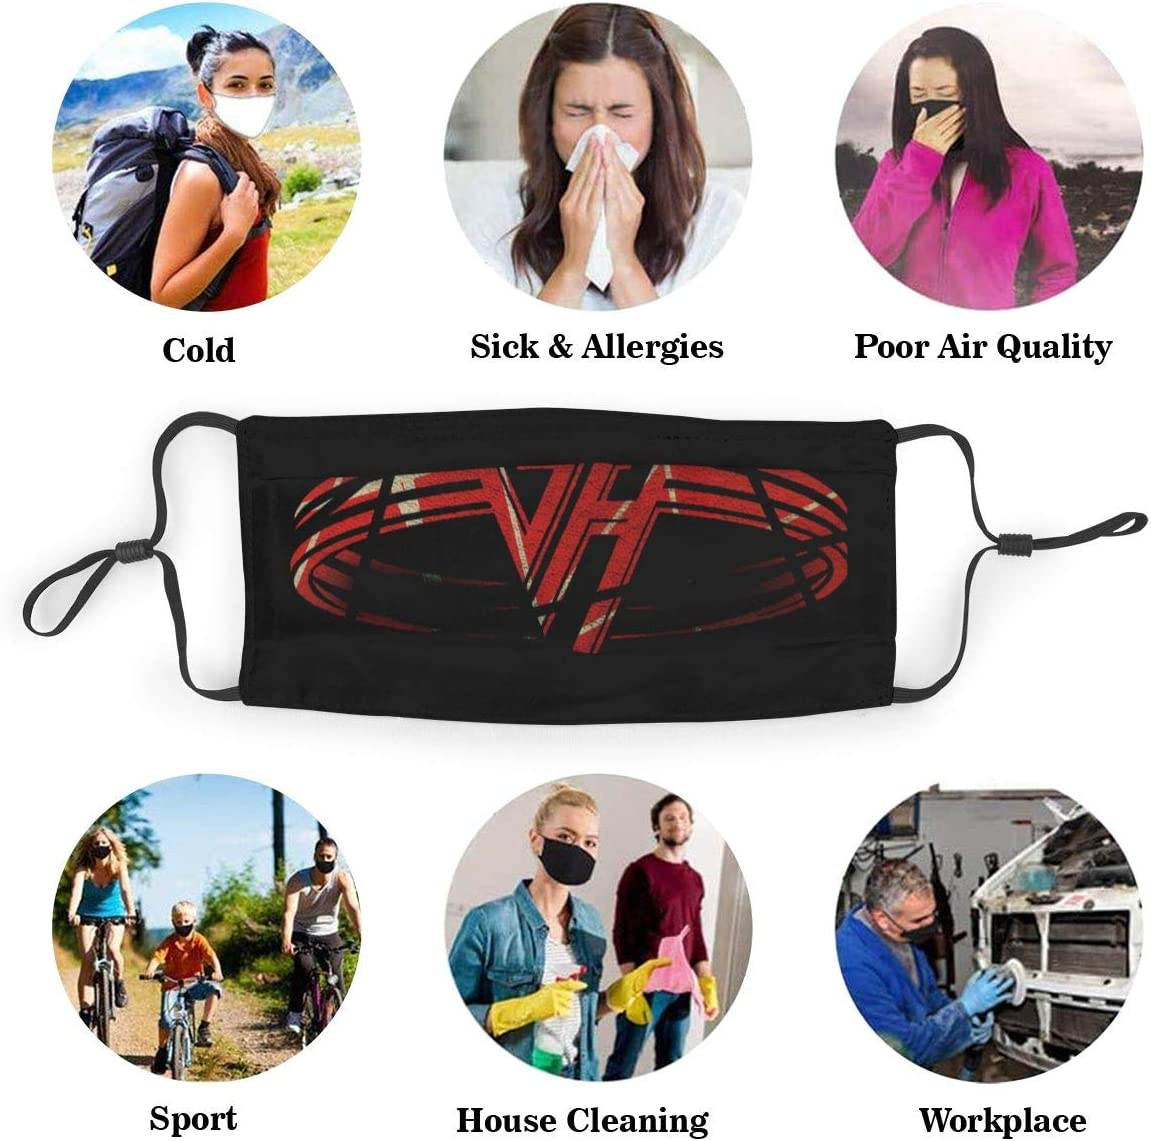 Best Of Van Halen Mouth cloth Mens Womens Adjustable With Carbon Filter Anti Dust Splash Proof